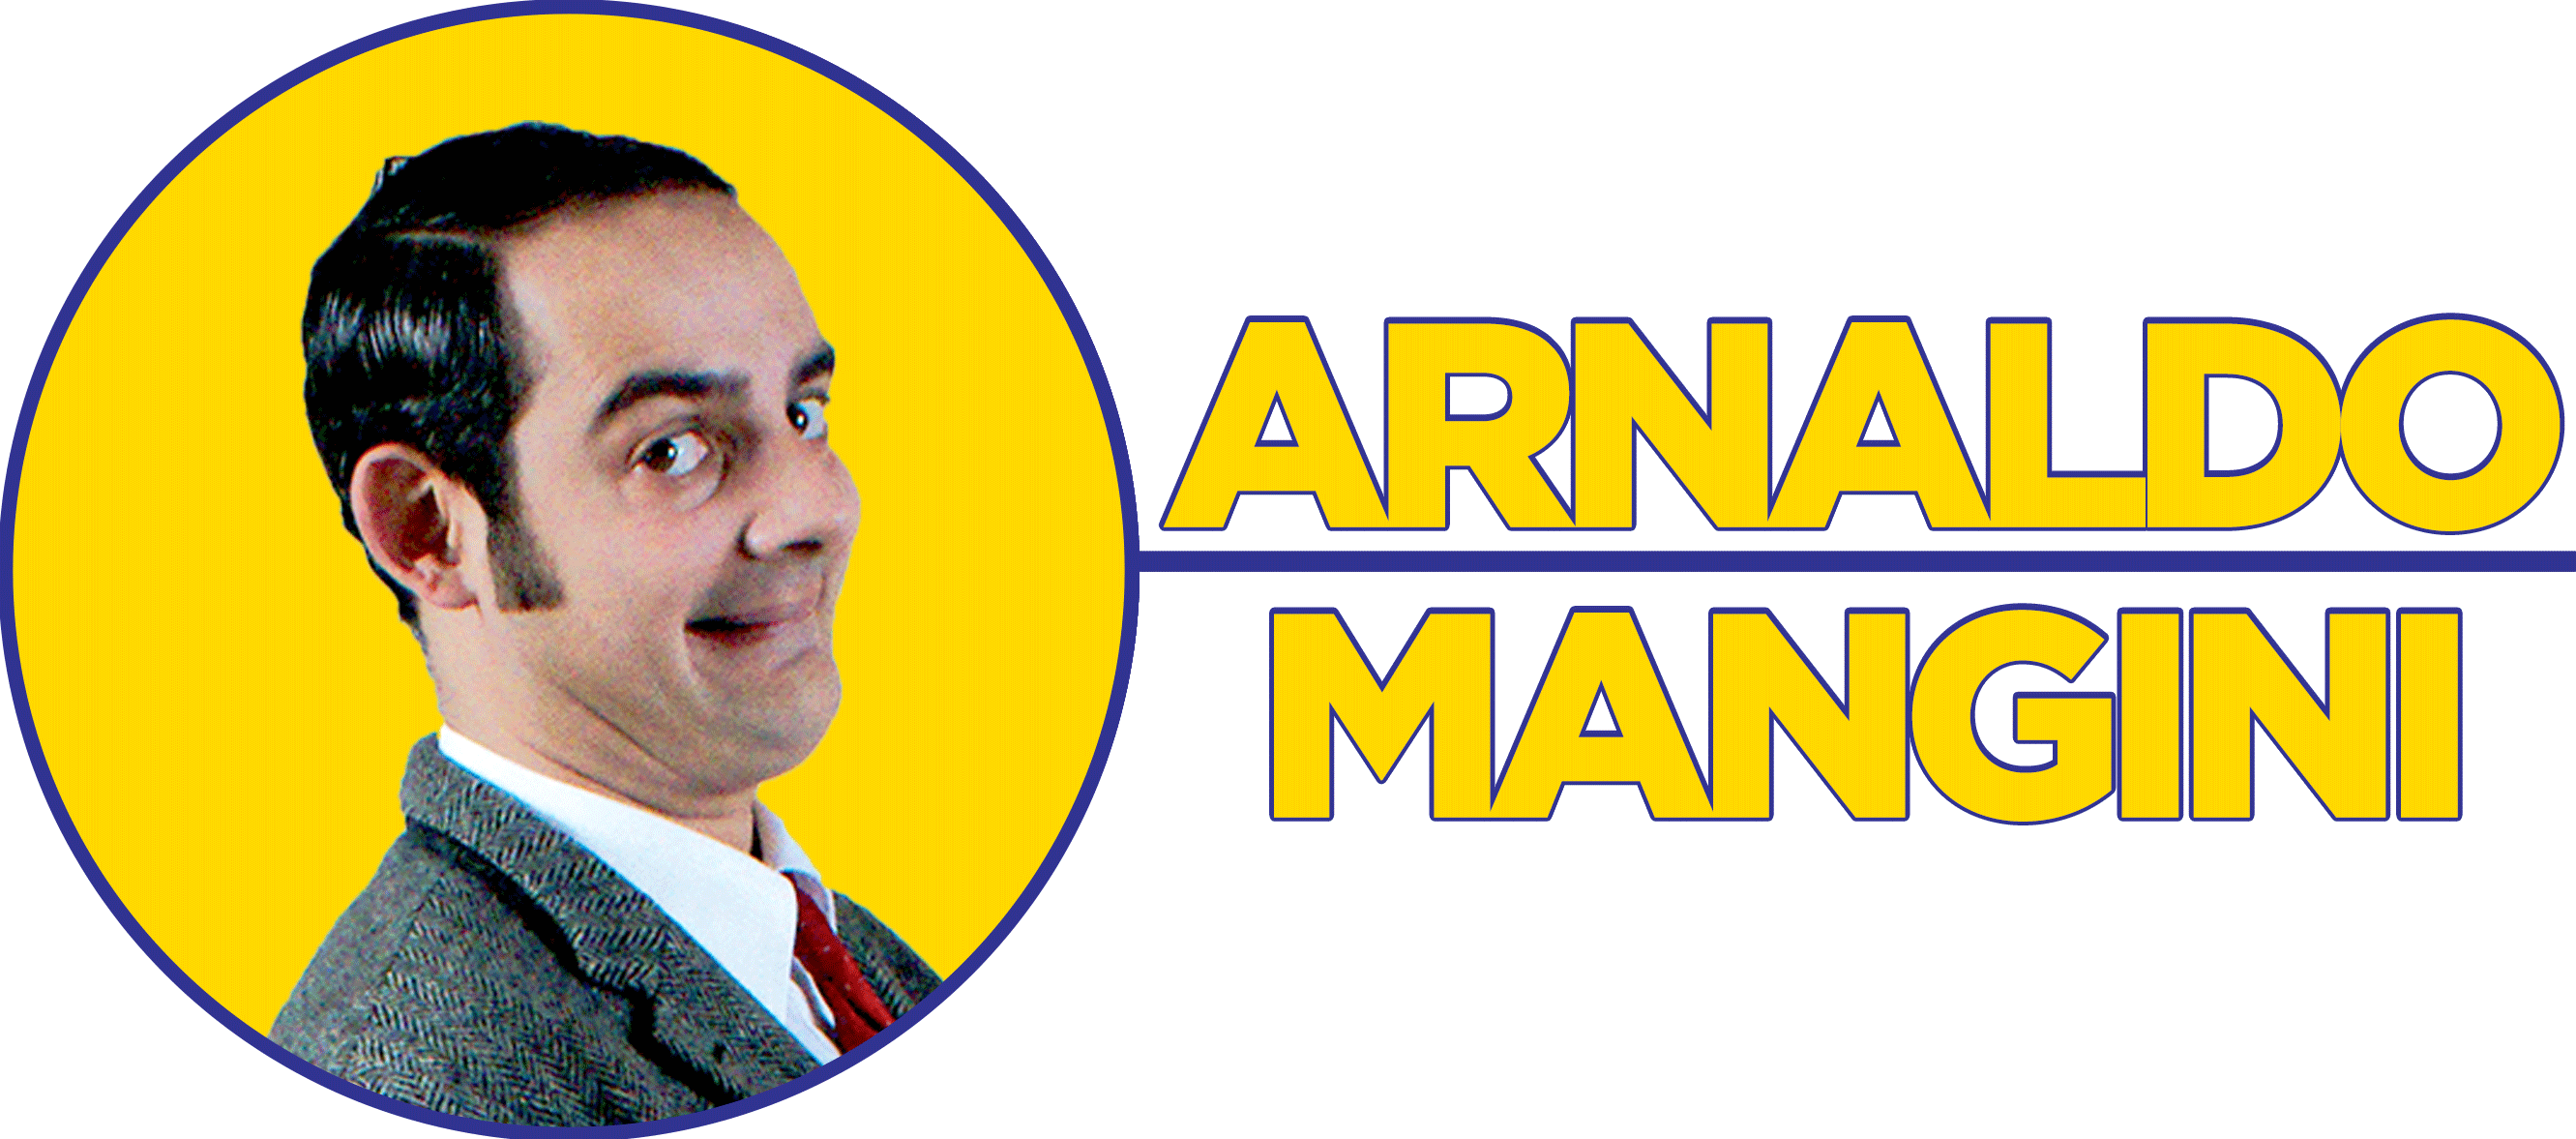 Blog - Arnaldo Mangini Clown Actor / MrBean Lookalike